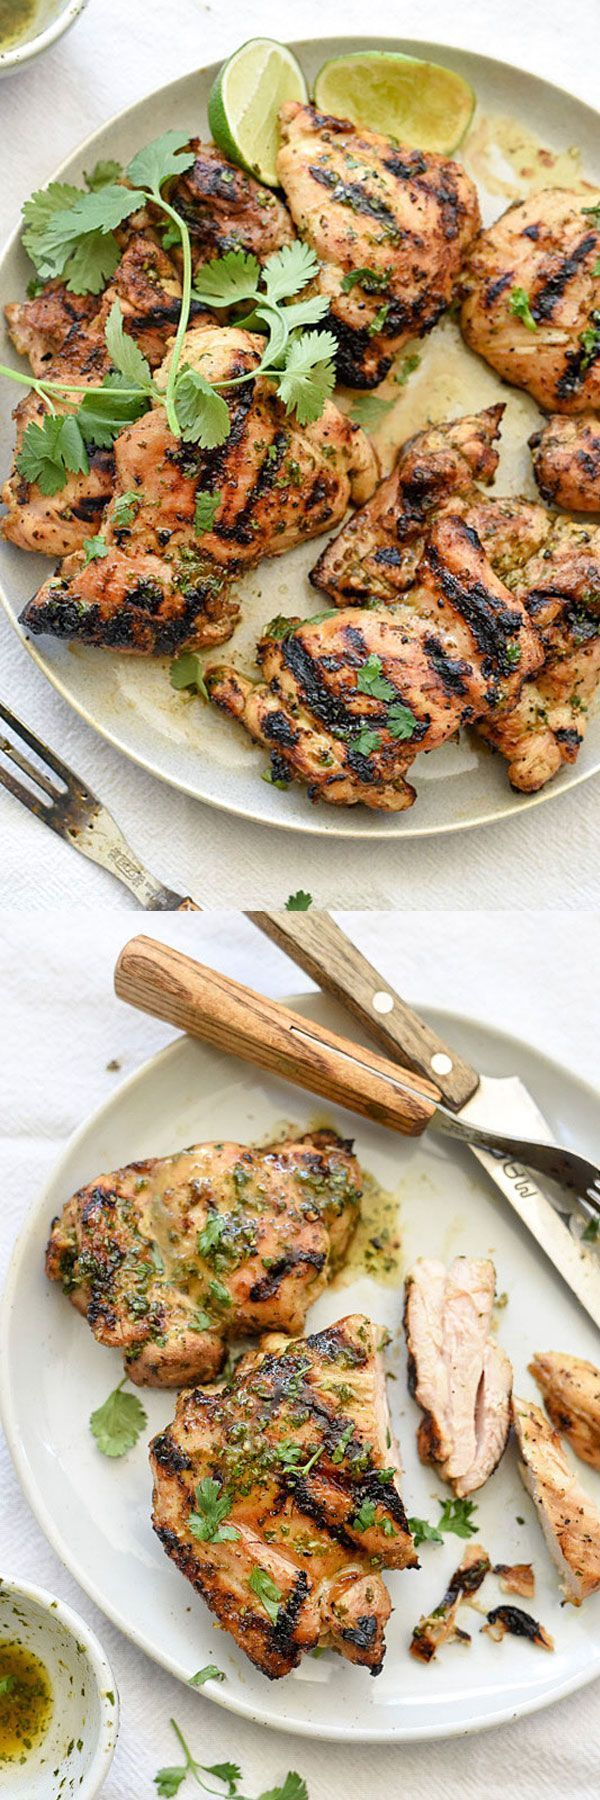 Both lime juice and zest make this a super flavorful marinade for grilled chicken thighs | http://foodiecrush.com